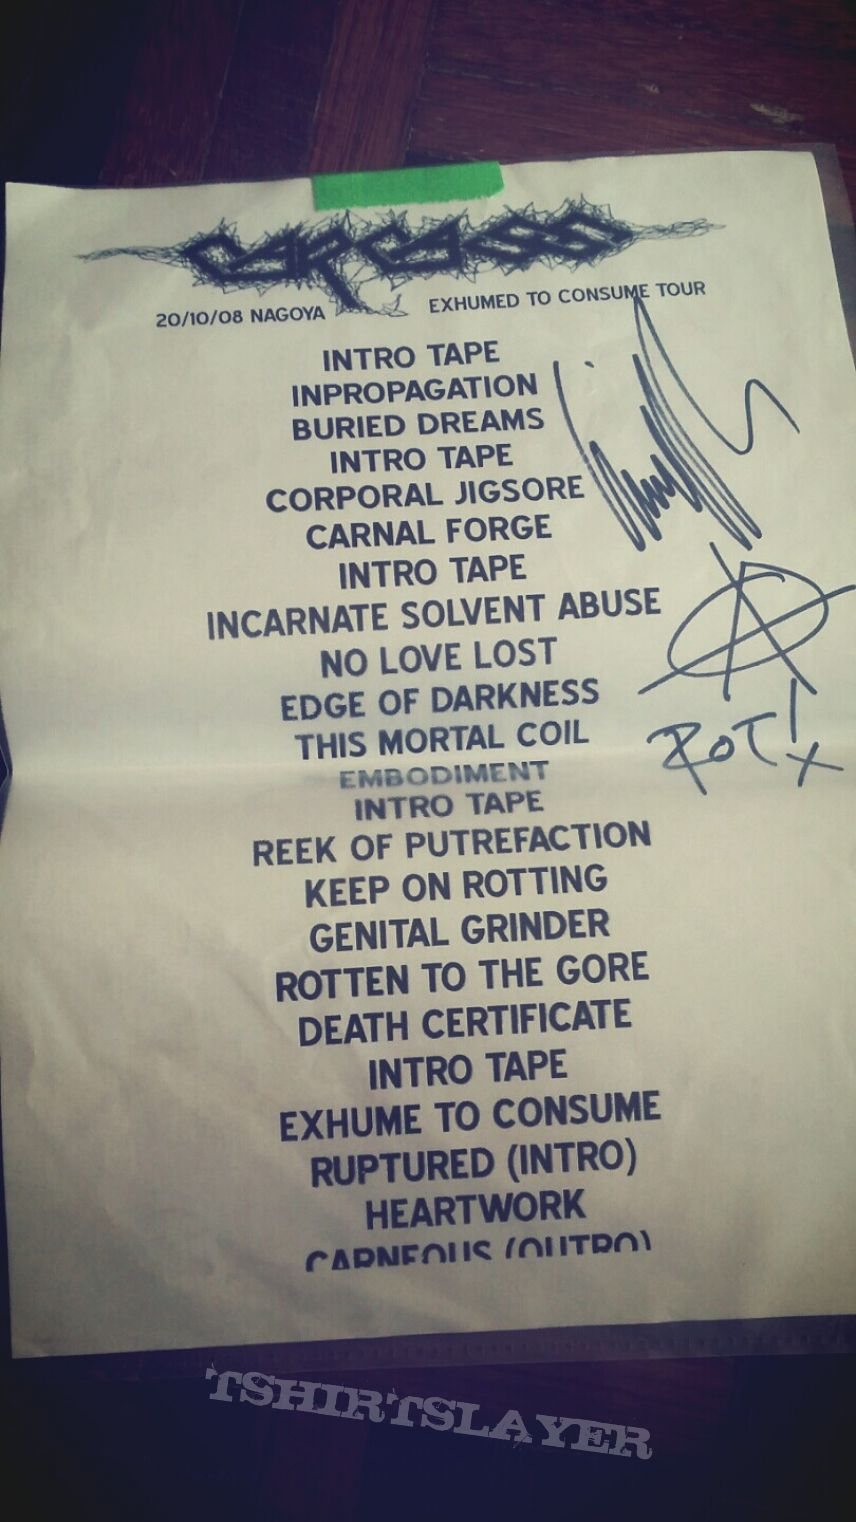 Song list Nagoya 2008 signed